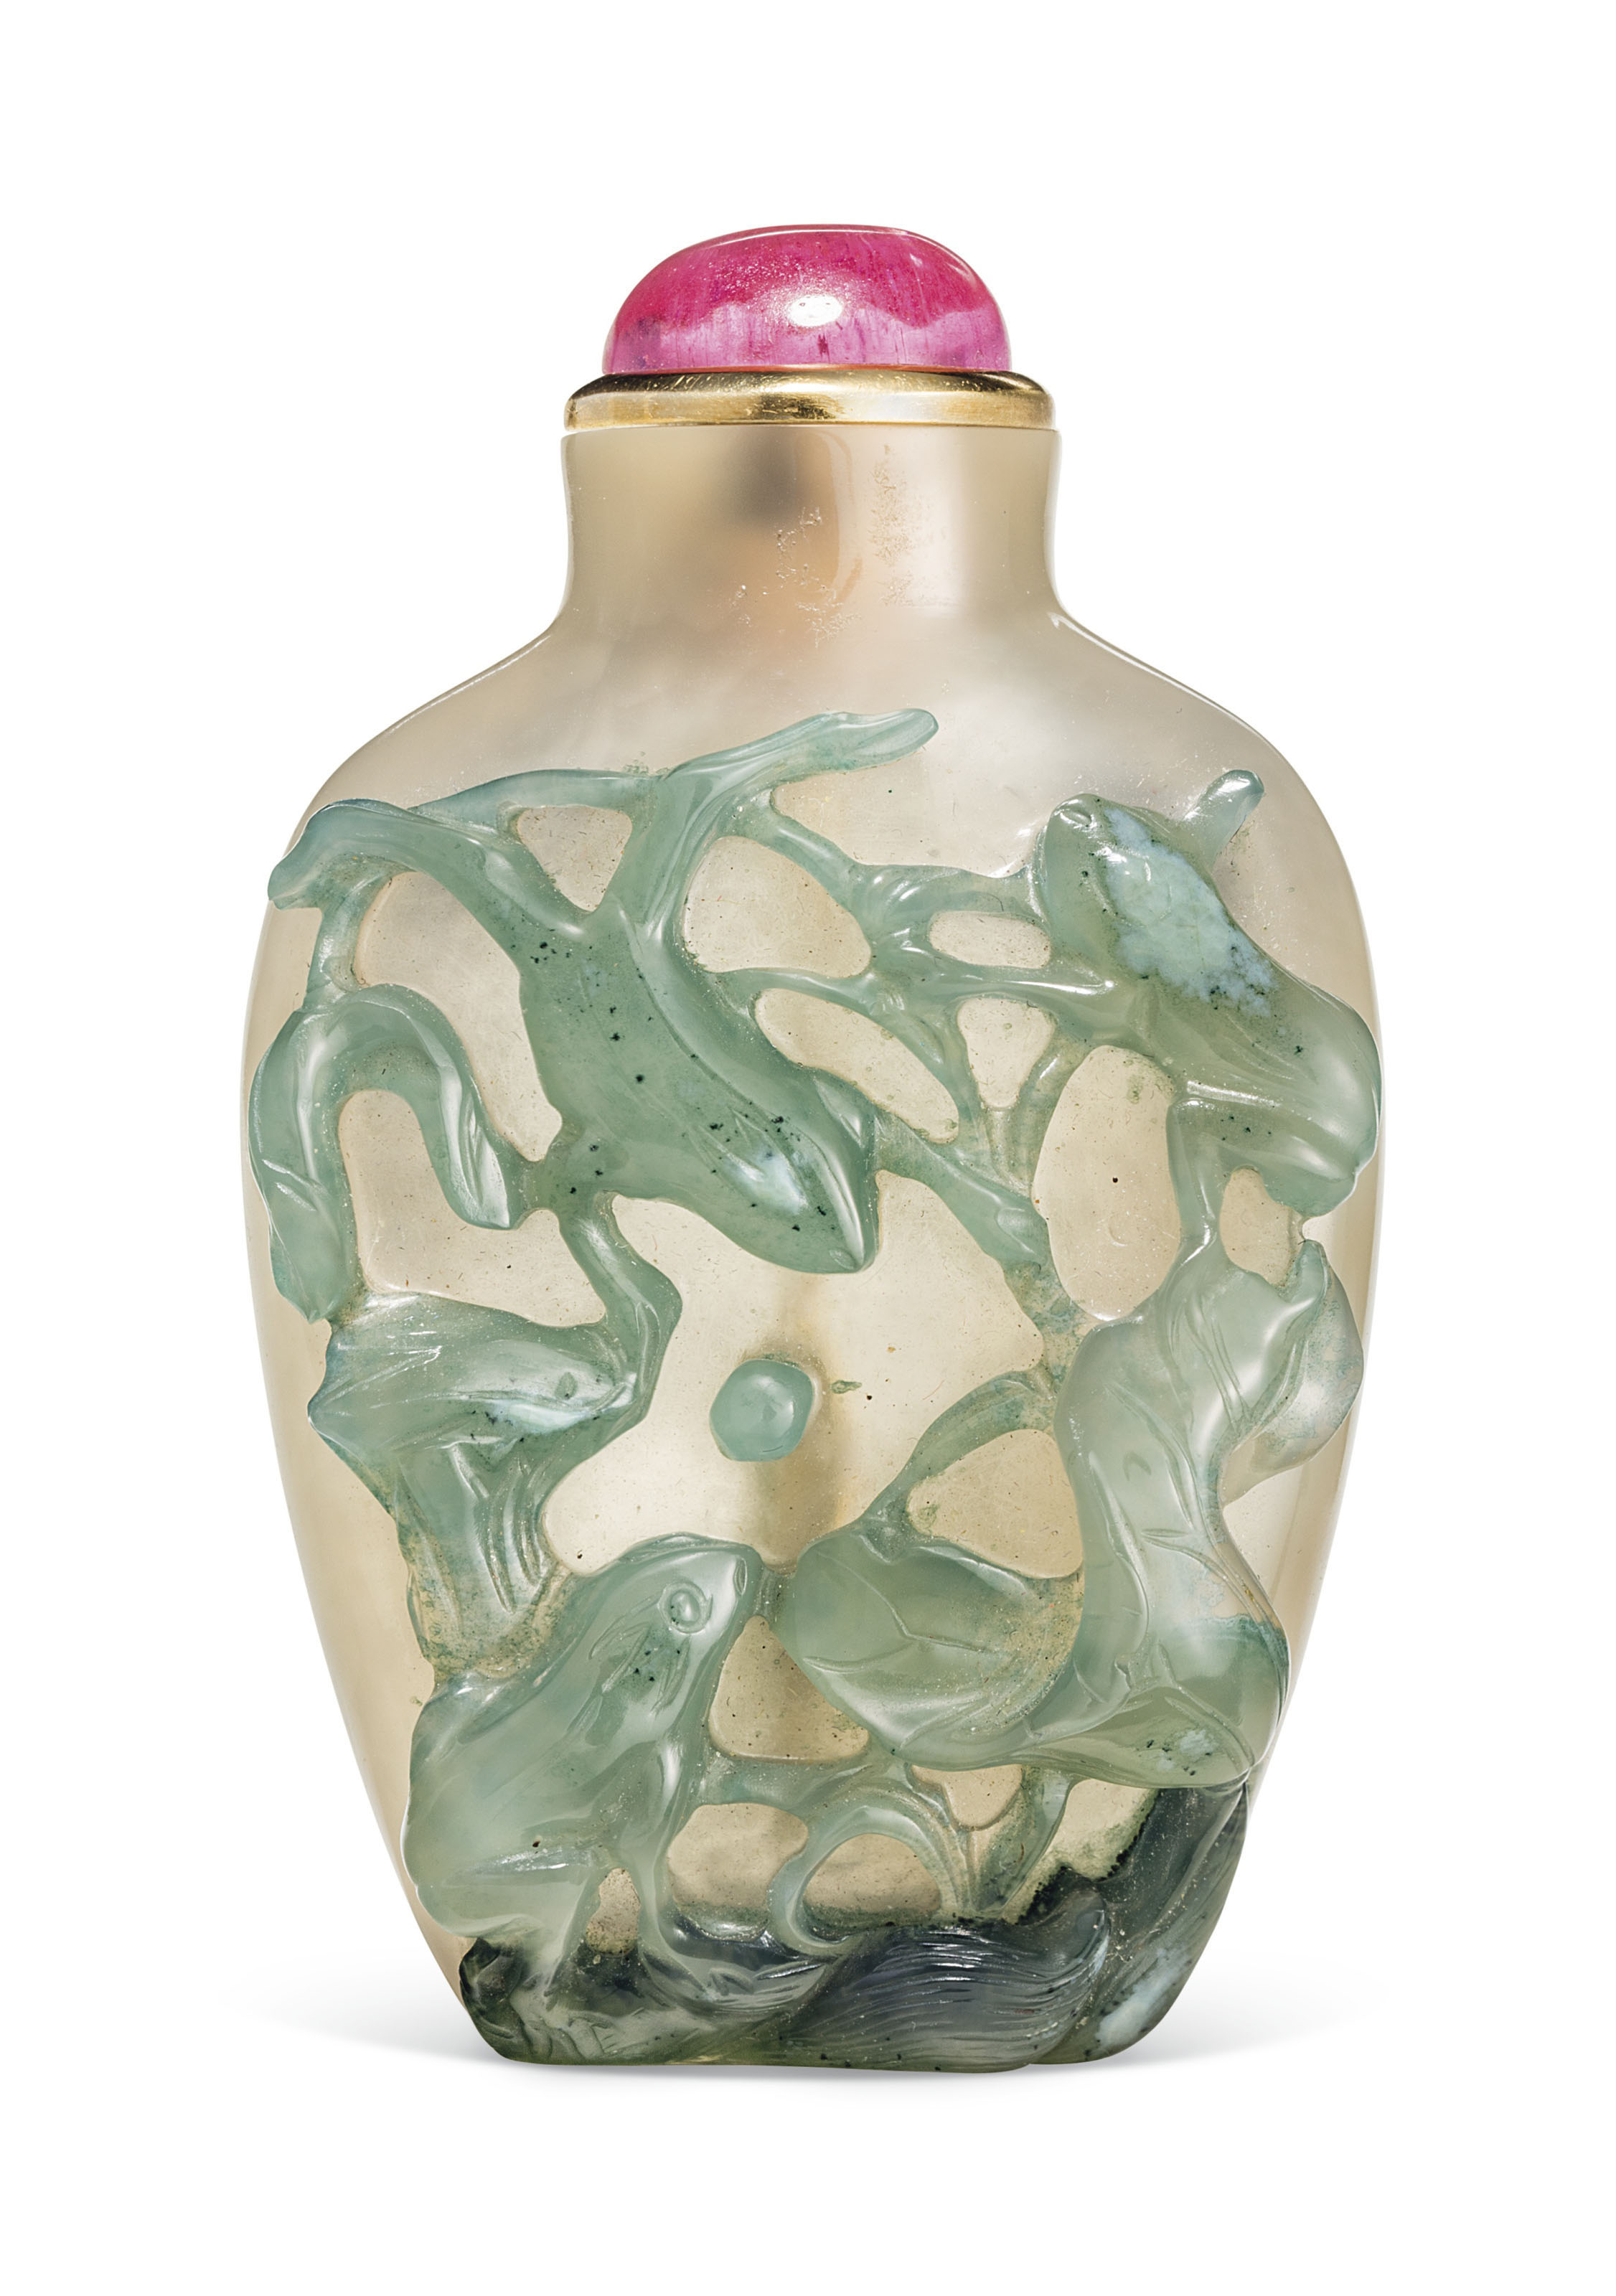 A carved chalcedony snuff bottle, probably imperial, official school, 1760-1800. 2  in (5  cm) high, pink tourmaline stopper and metal spoon. Estimate $12,000-15,000. This lot is offered in The Ruth and Carl Barron Collection of Fine Chinese Snuff Bottles Part VI on 12 September 2018 at Christie's in New York